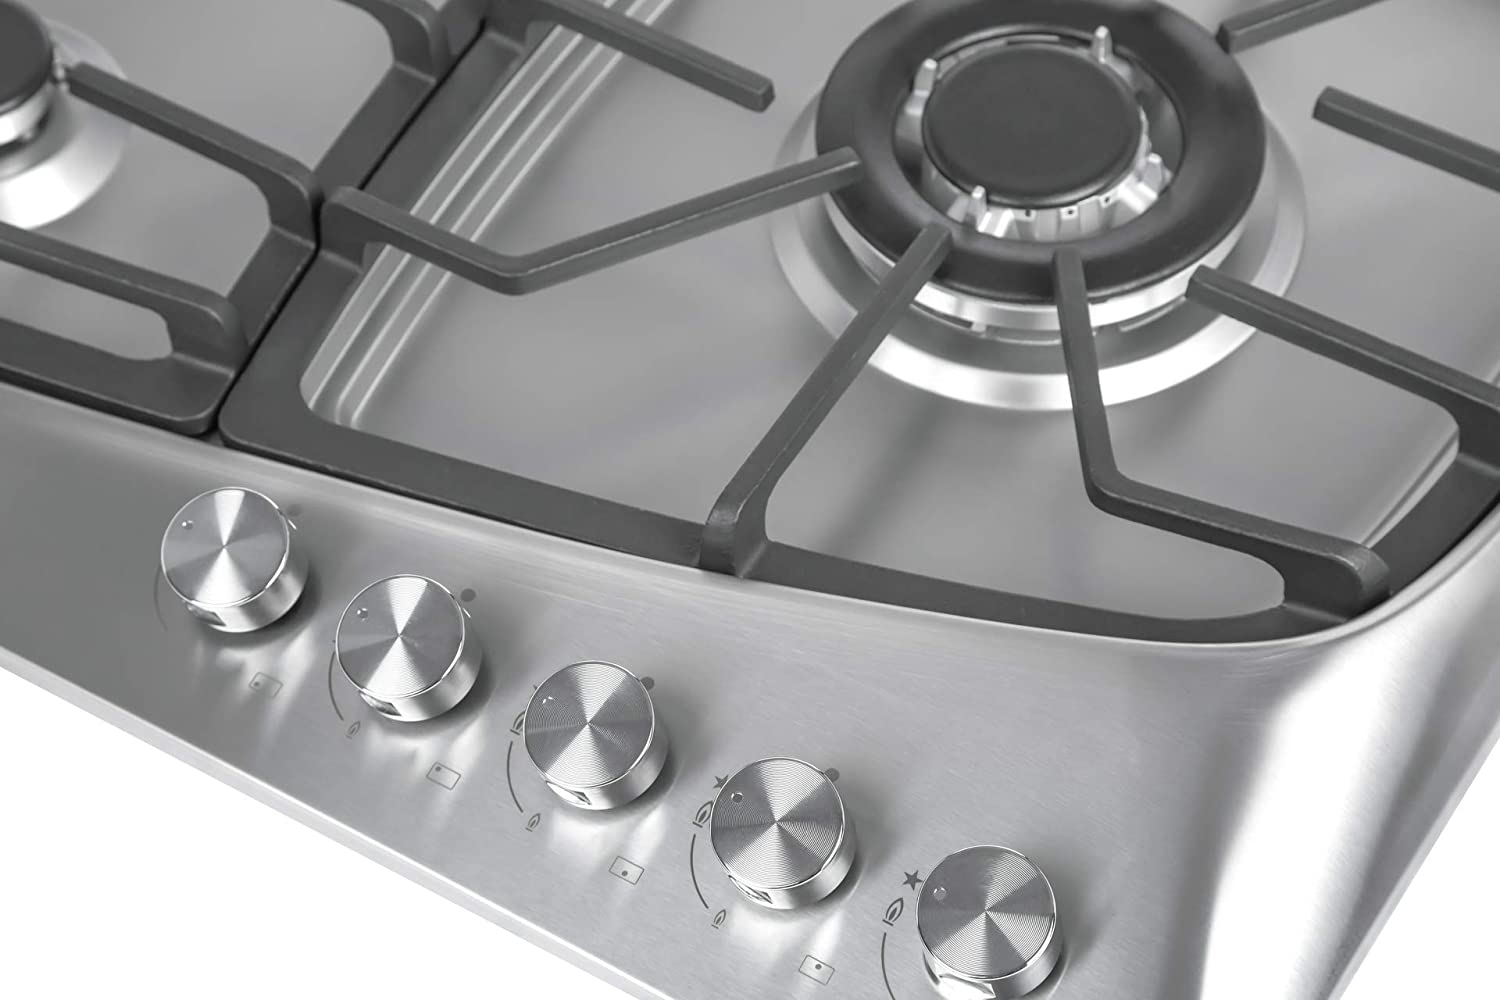 Empava 36 5 Italy Sabaf Burners Stove Top Gas Cooktop Stainless Steel LPG//NG Convertible EMPV-36GC901